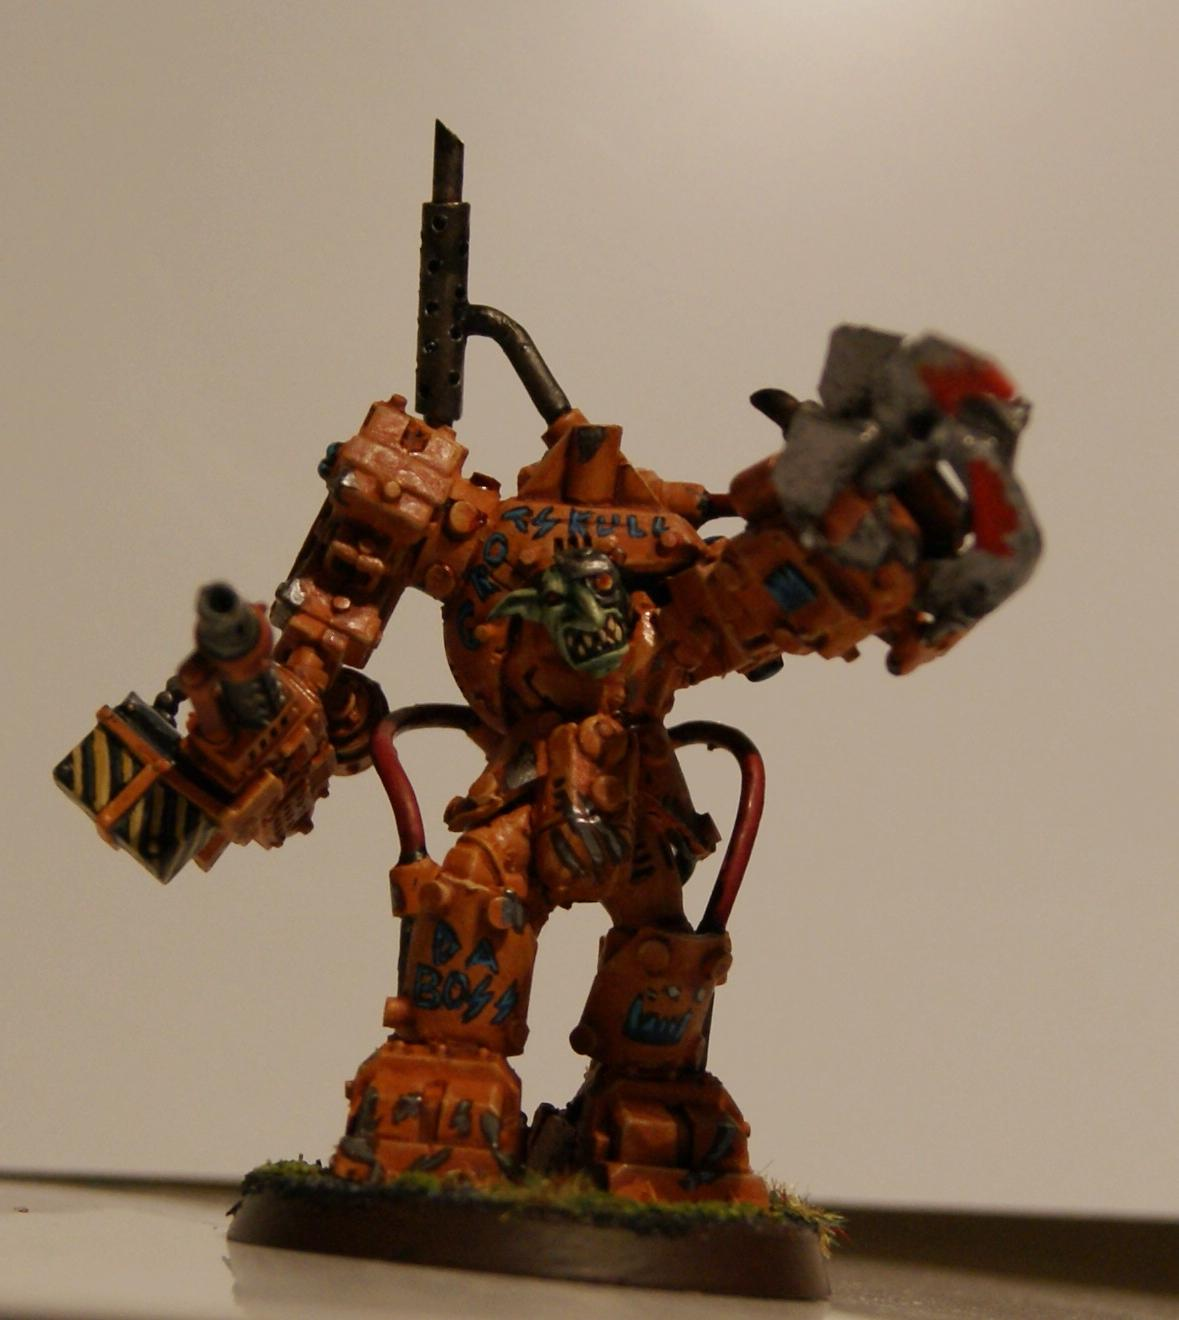 Conversion, Grot Rebellion, Grot Rebels, Grots, Orks, Warboss, Warhammer 40,000